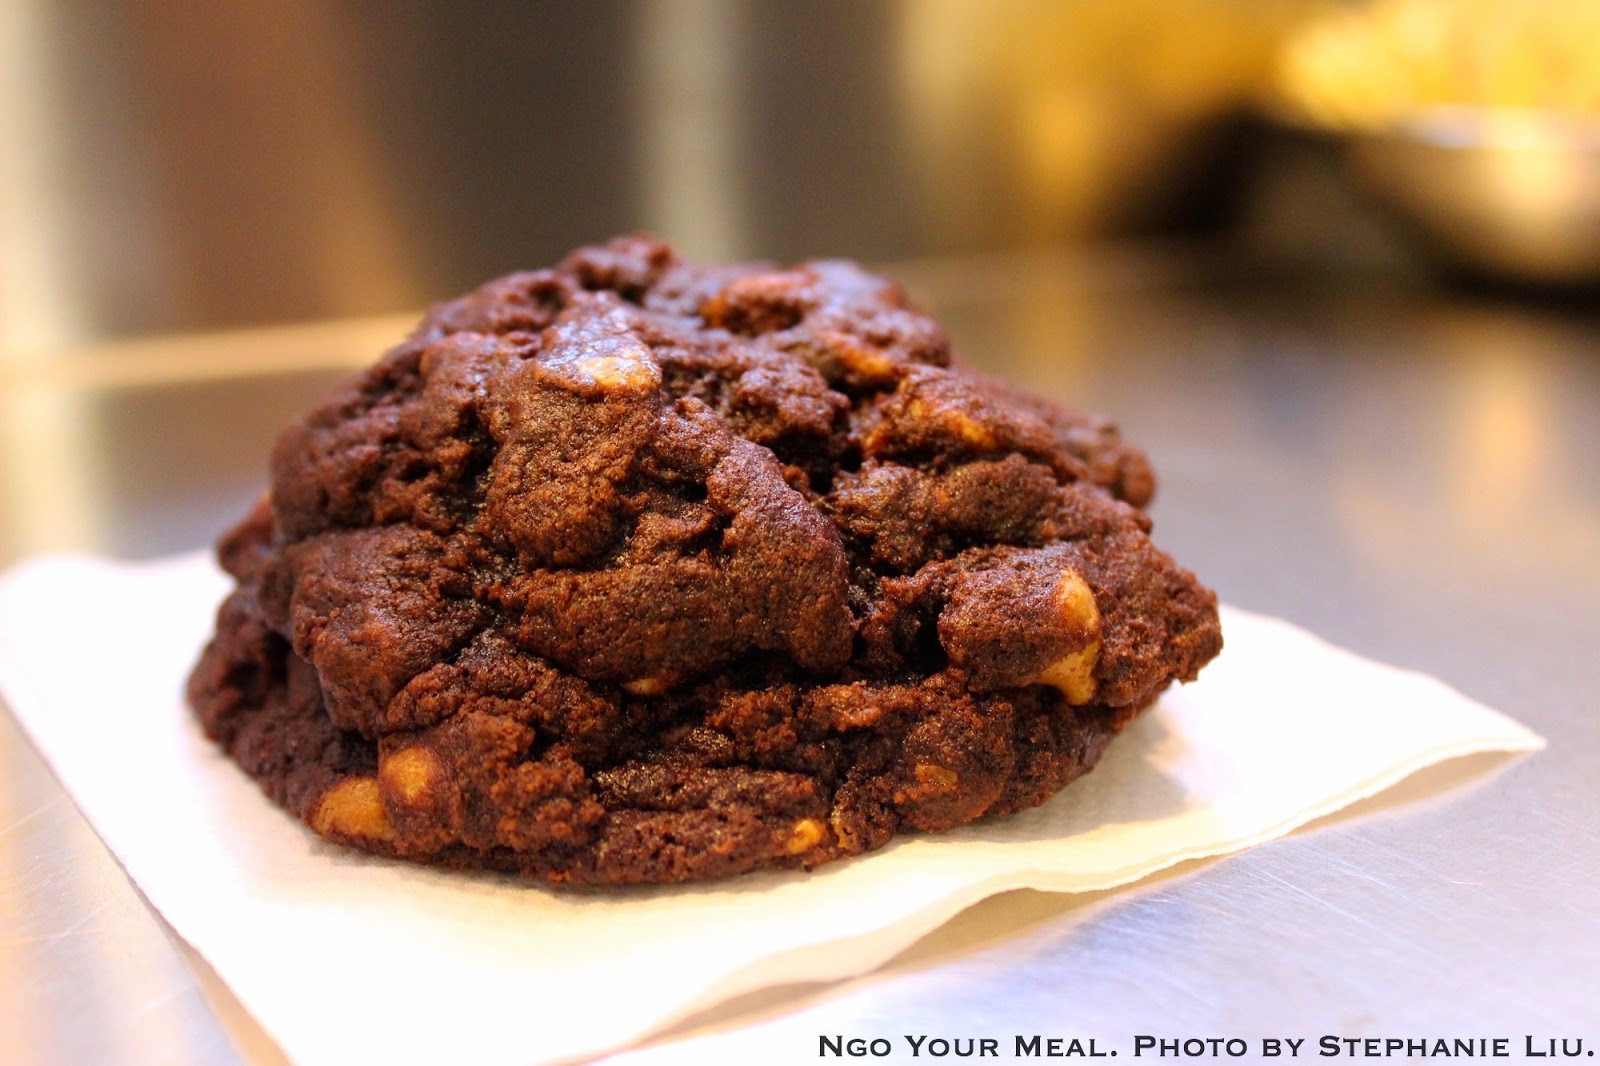 Dark Chocolate Peanut Butter Chip cookie at Levain Bakery